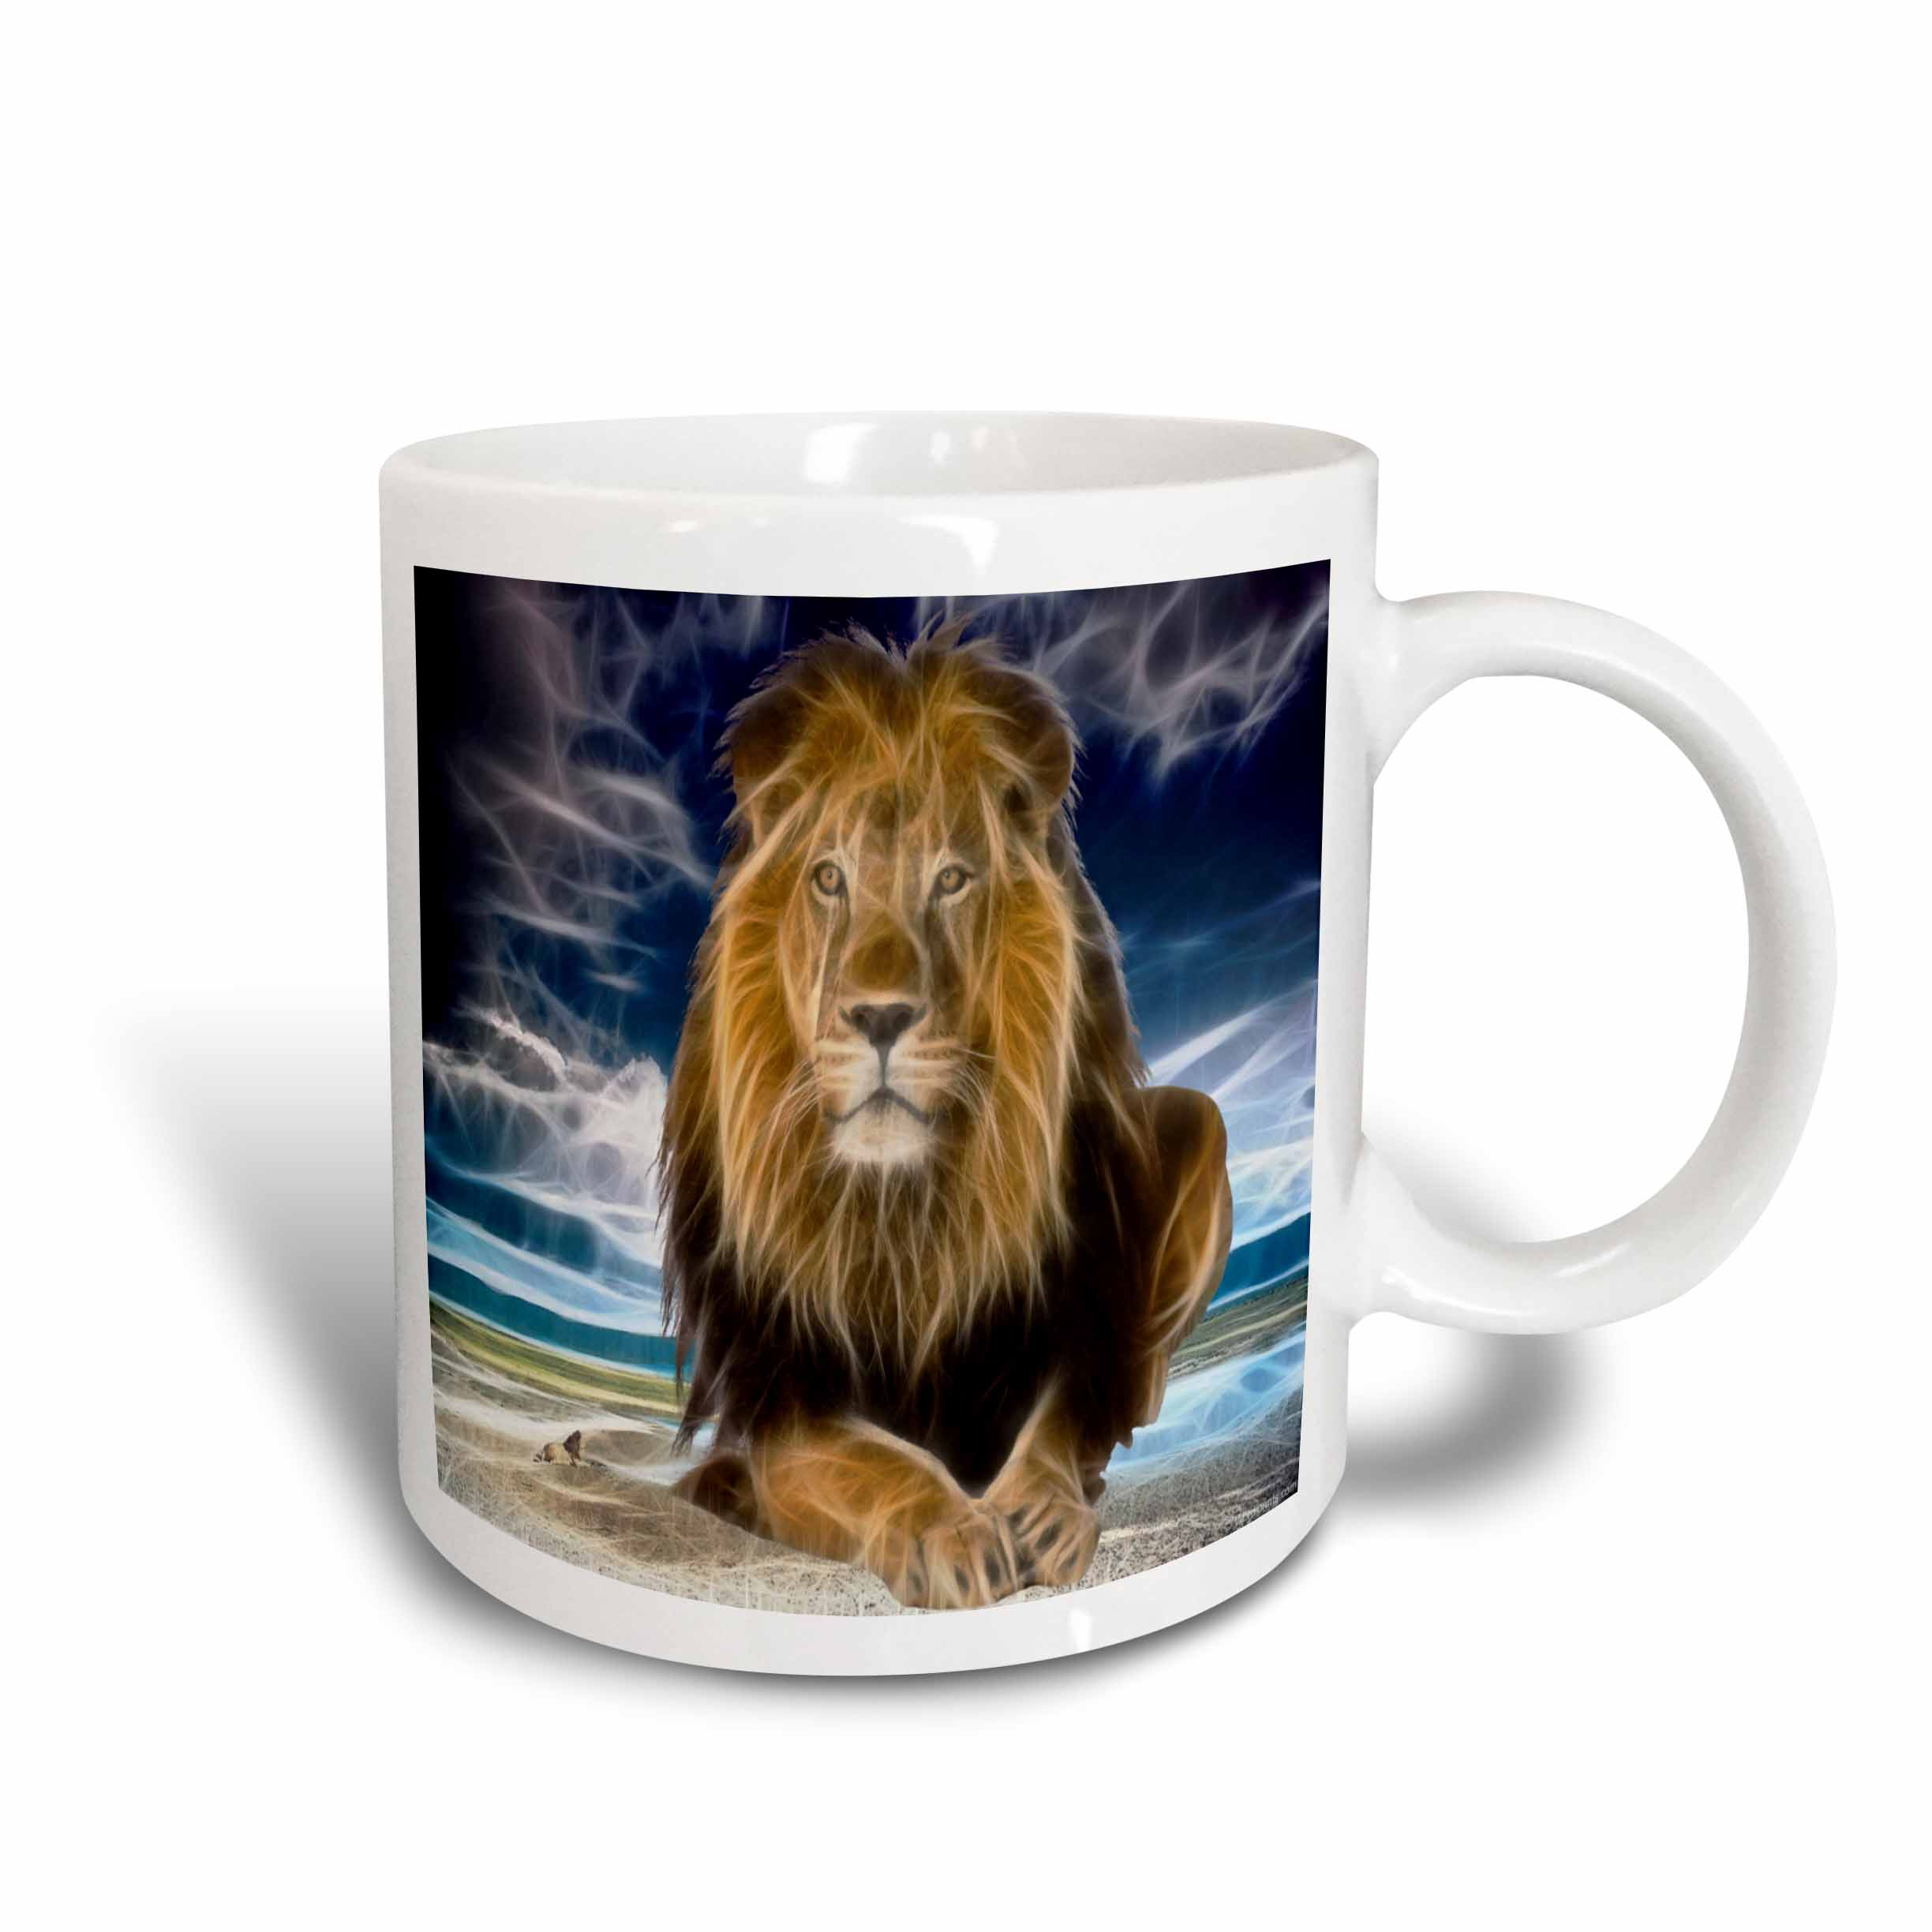 3dRose King of the jungle, stunning lion on the prairie with digital affects, Ceramic Mug, 11-ounce